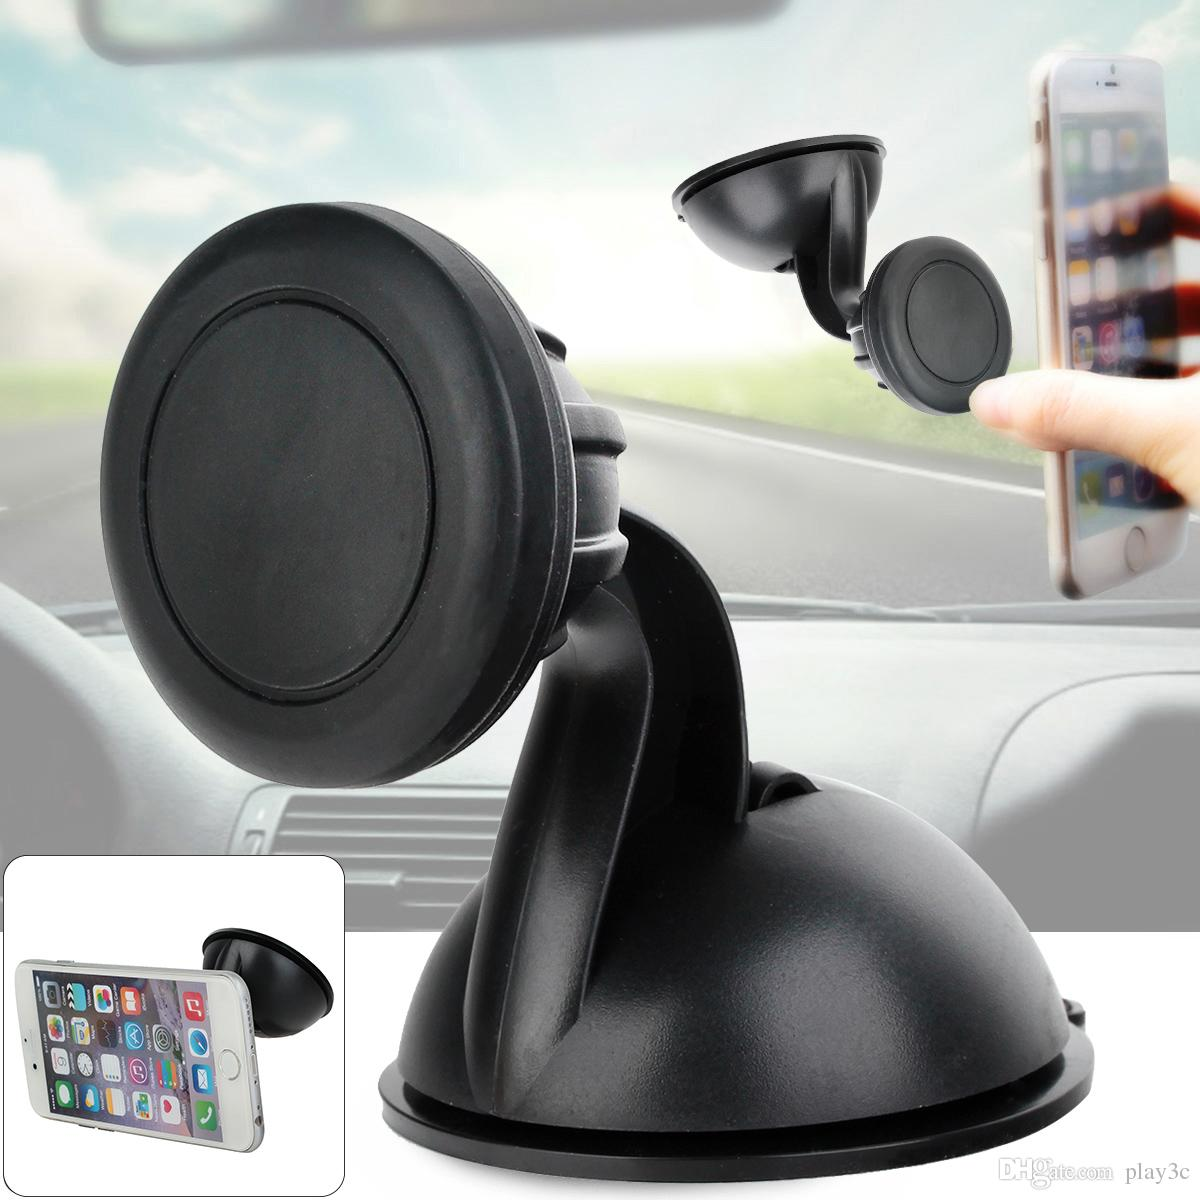 hight resolution of 2018 hot selling universal xwj 1505 magnetic 360 rotary mobile phone mount holder safe driving small and exquisite from play3c 11 51 dhgate com